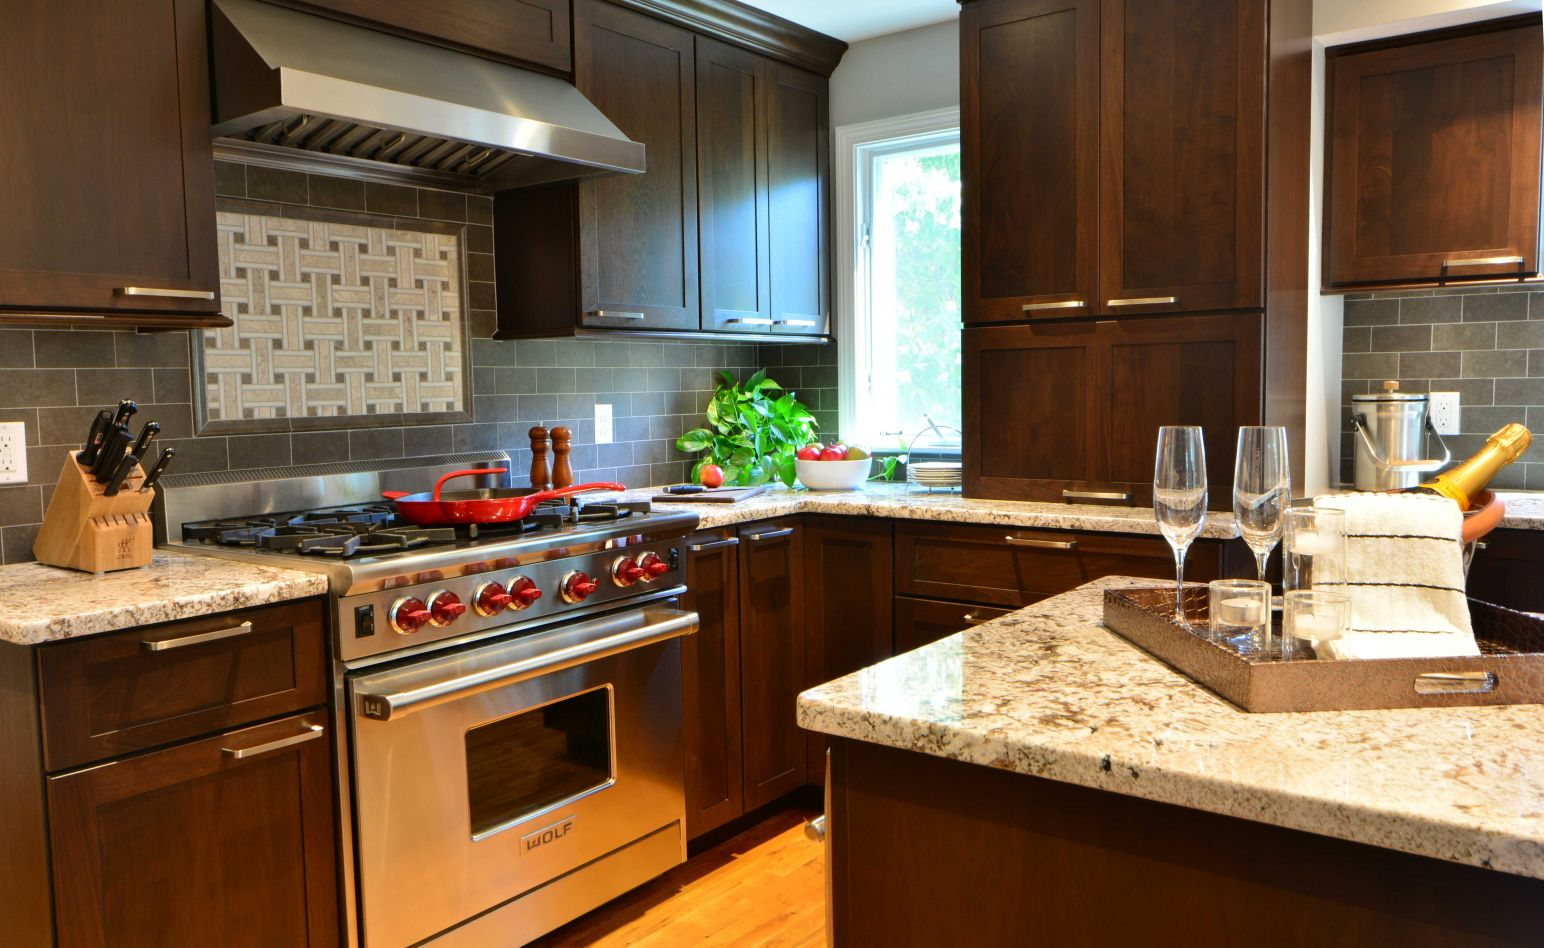 Total Kitchen Remodel Cost Kitchen Trash Can Ideas Check - Total kitchen remodel cost